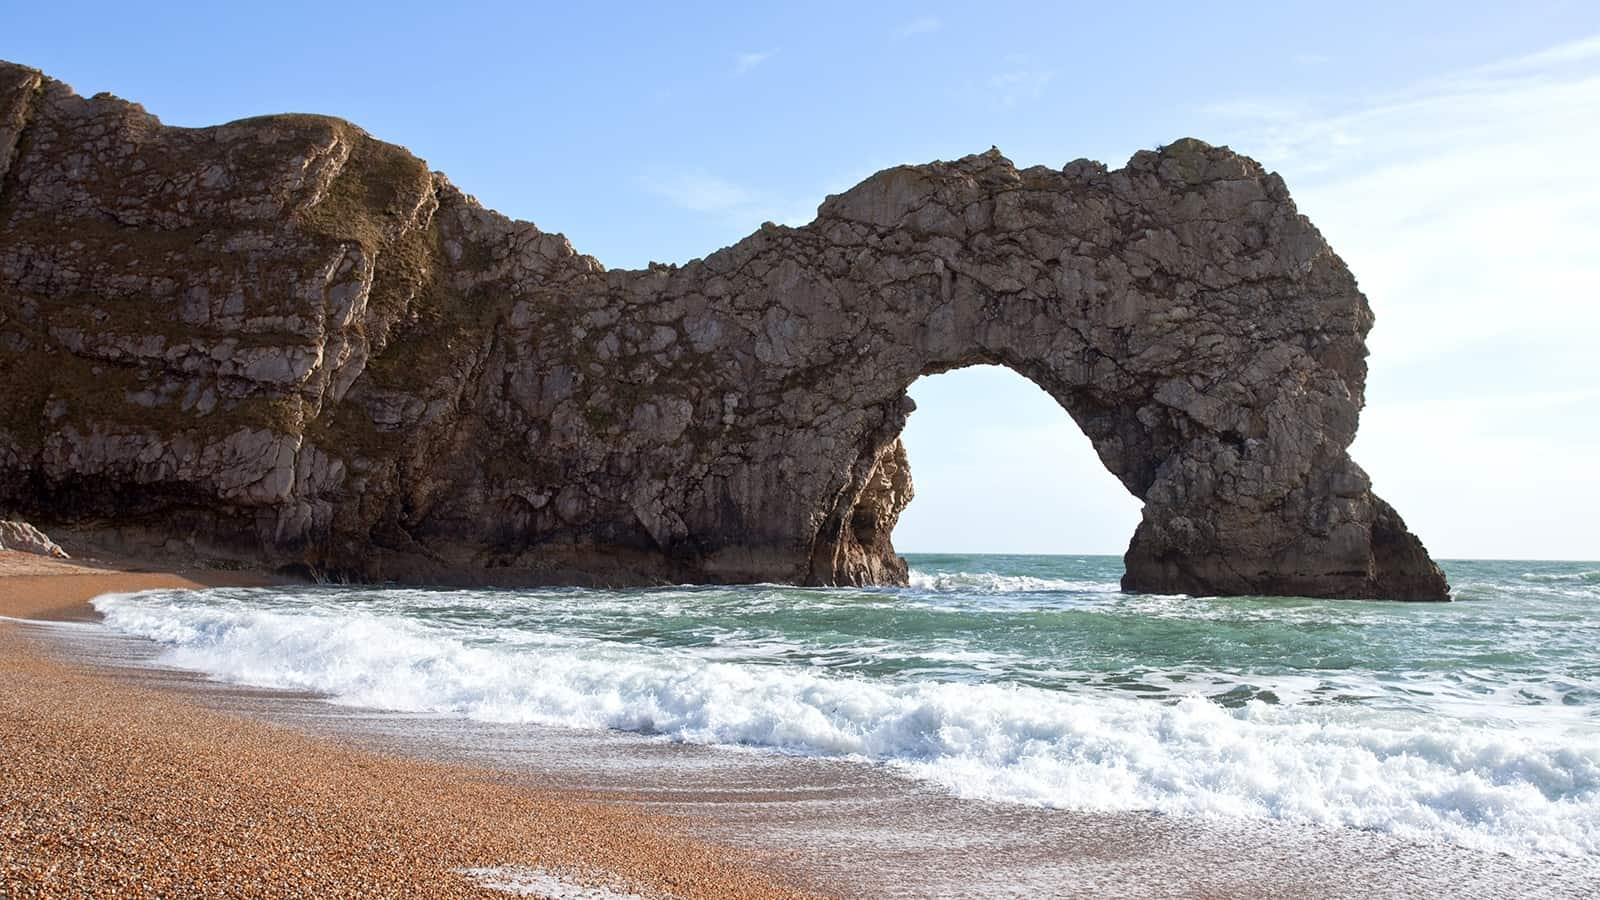 Durdle Door in Dorset with the sea beneath, on a clear summer day